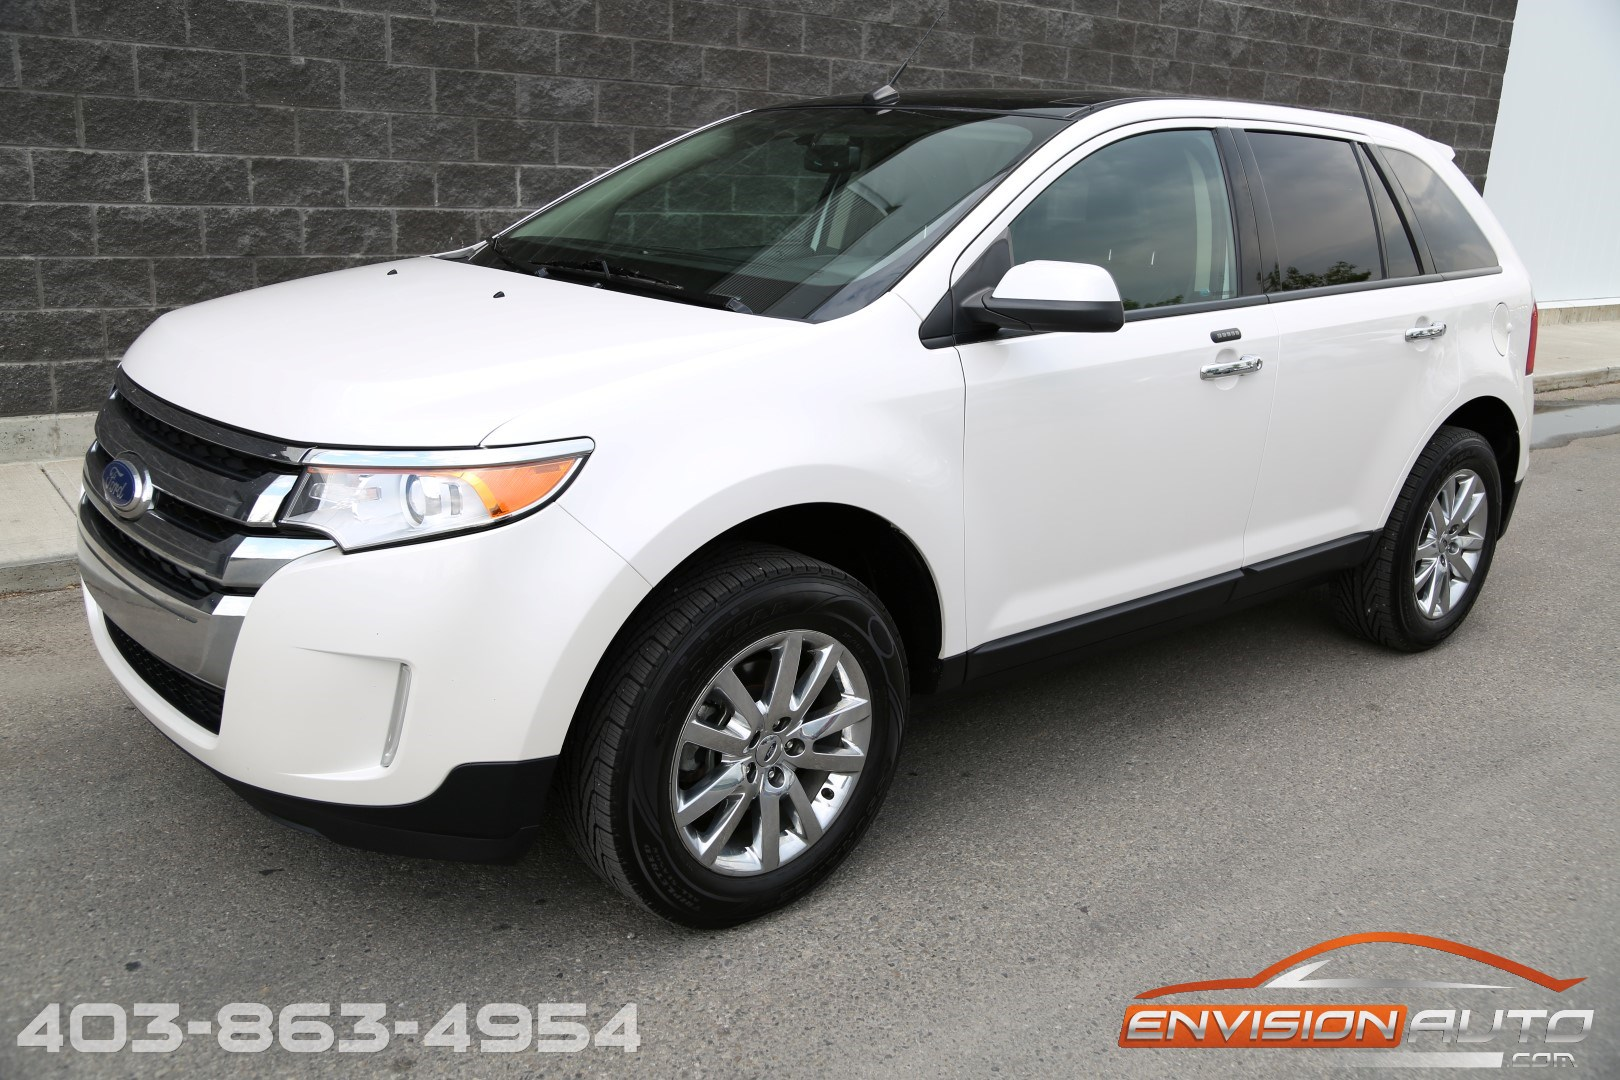 2011 ford edge sel all wheel drive 1 owner envision auto. Black Bedroom Furniture Sets. Home Design Ideas